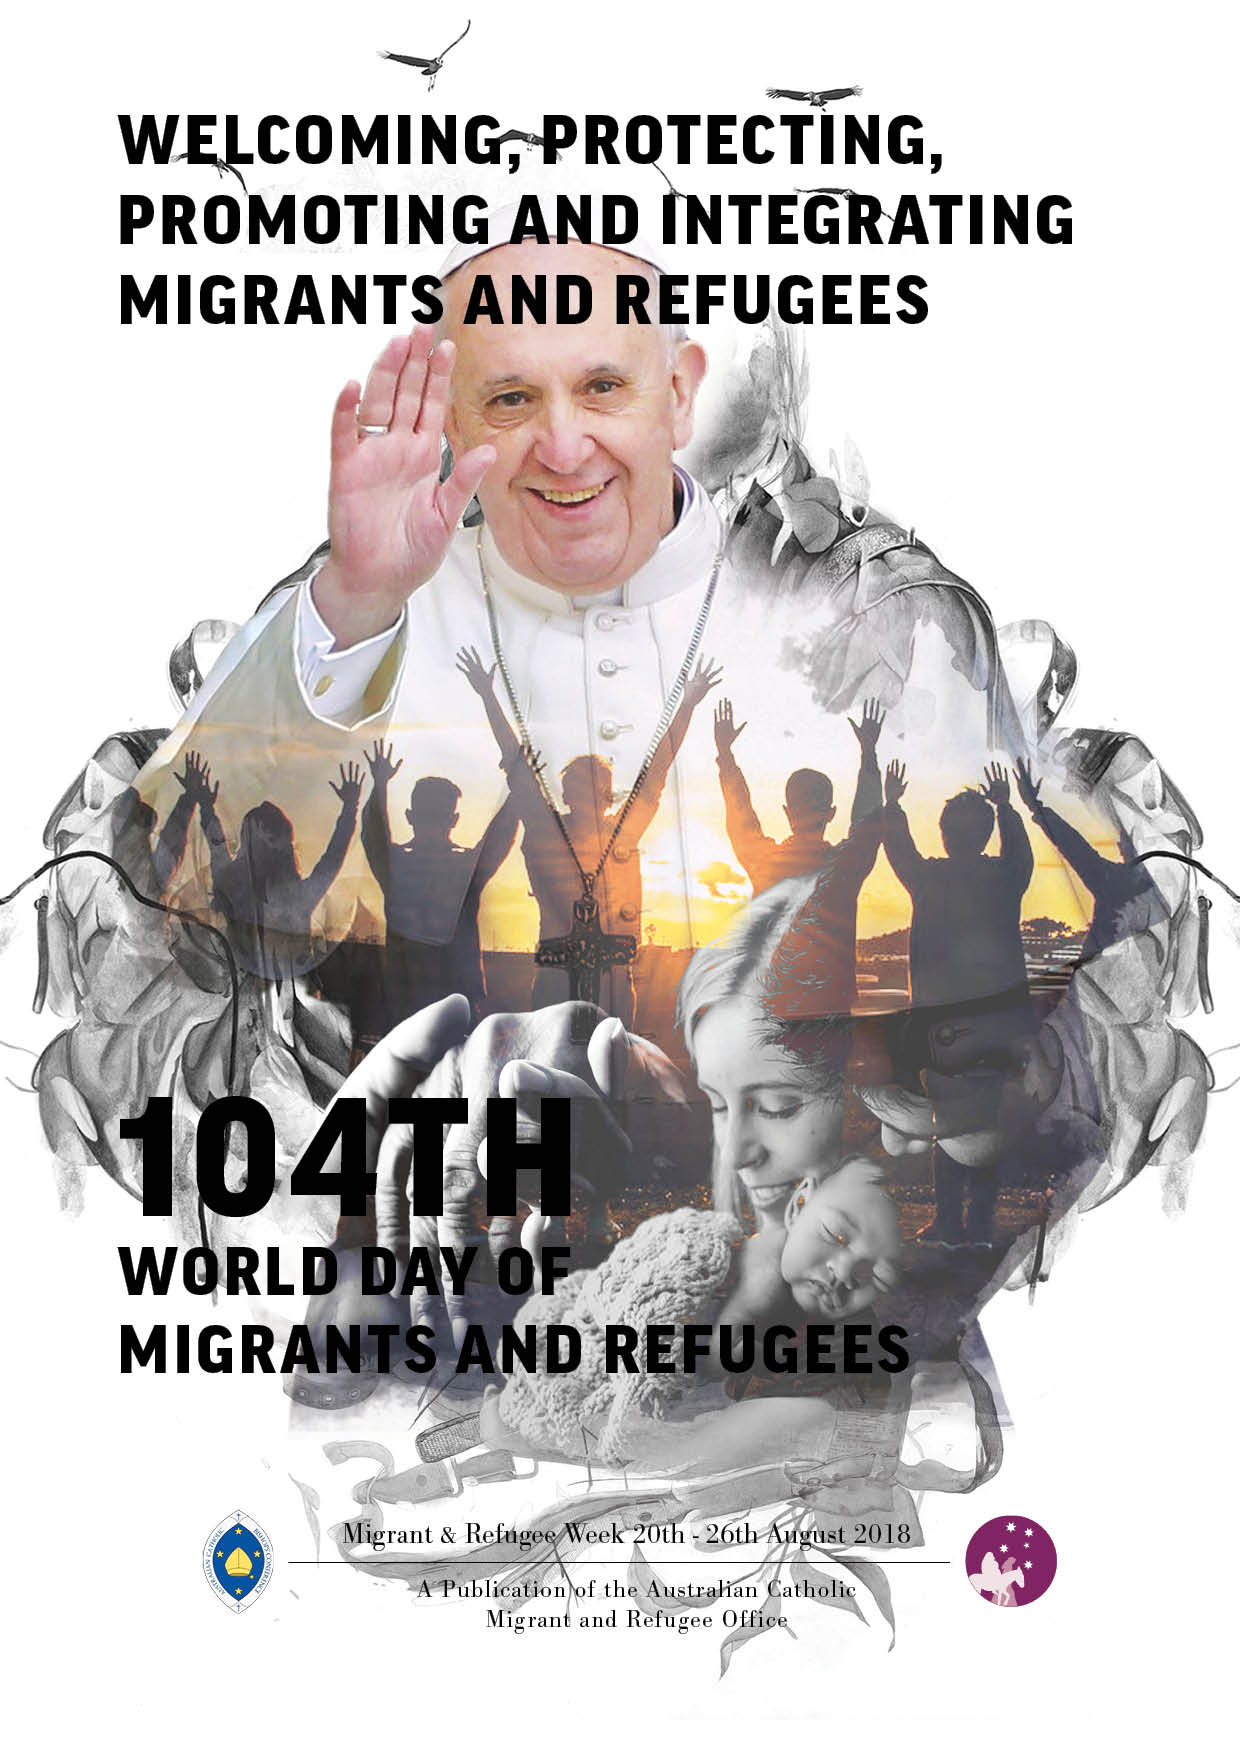 pope welcoming migrants